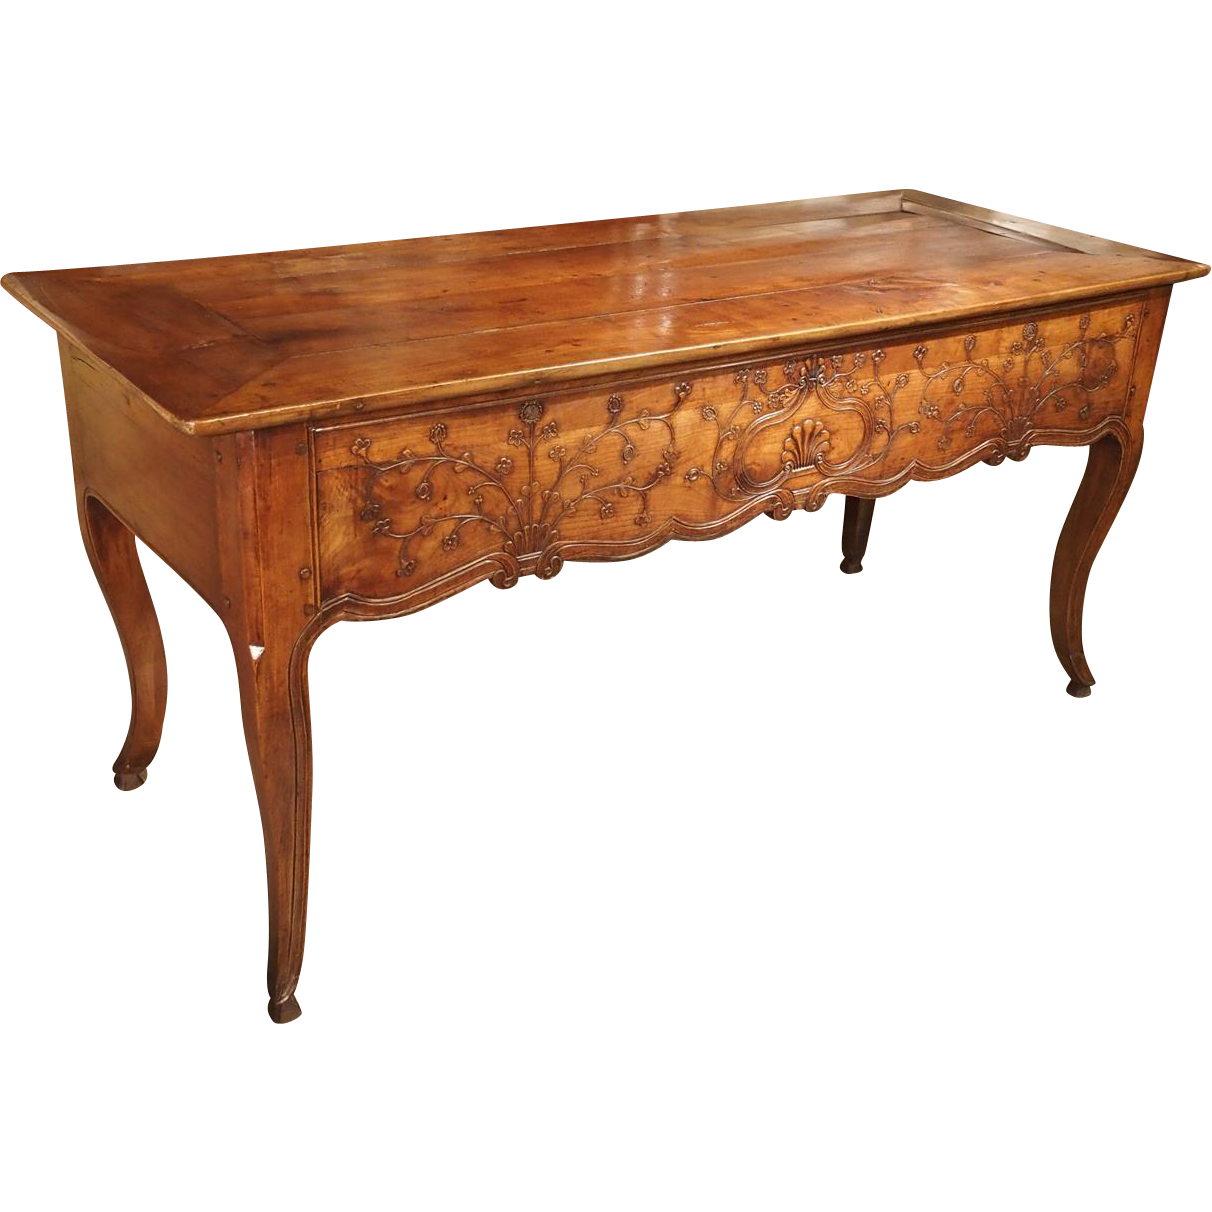 Antique Cherrywood Console Table from Rennes France, Circa 1870